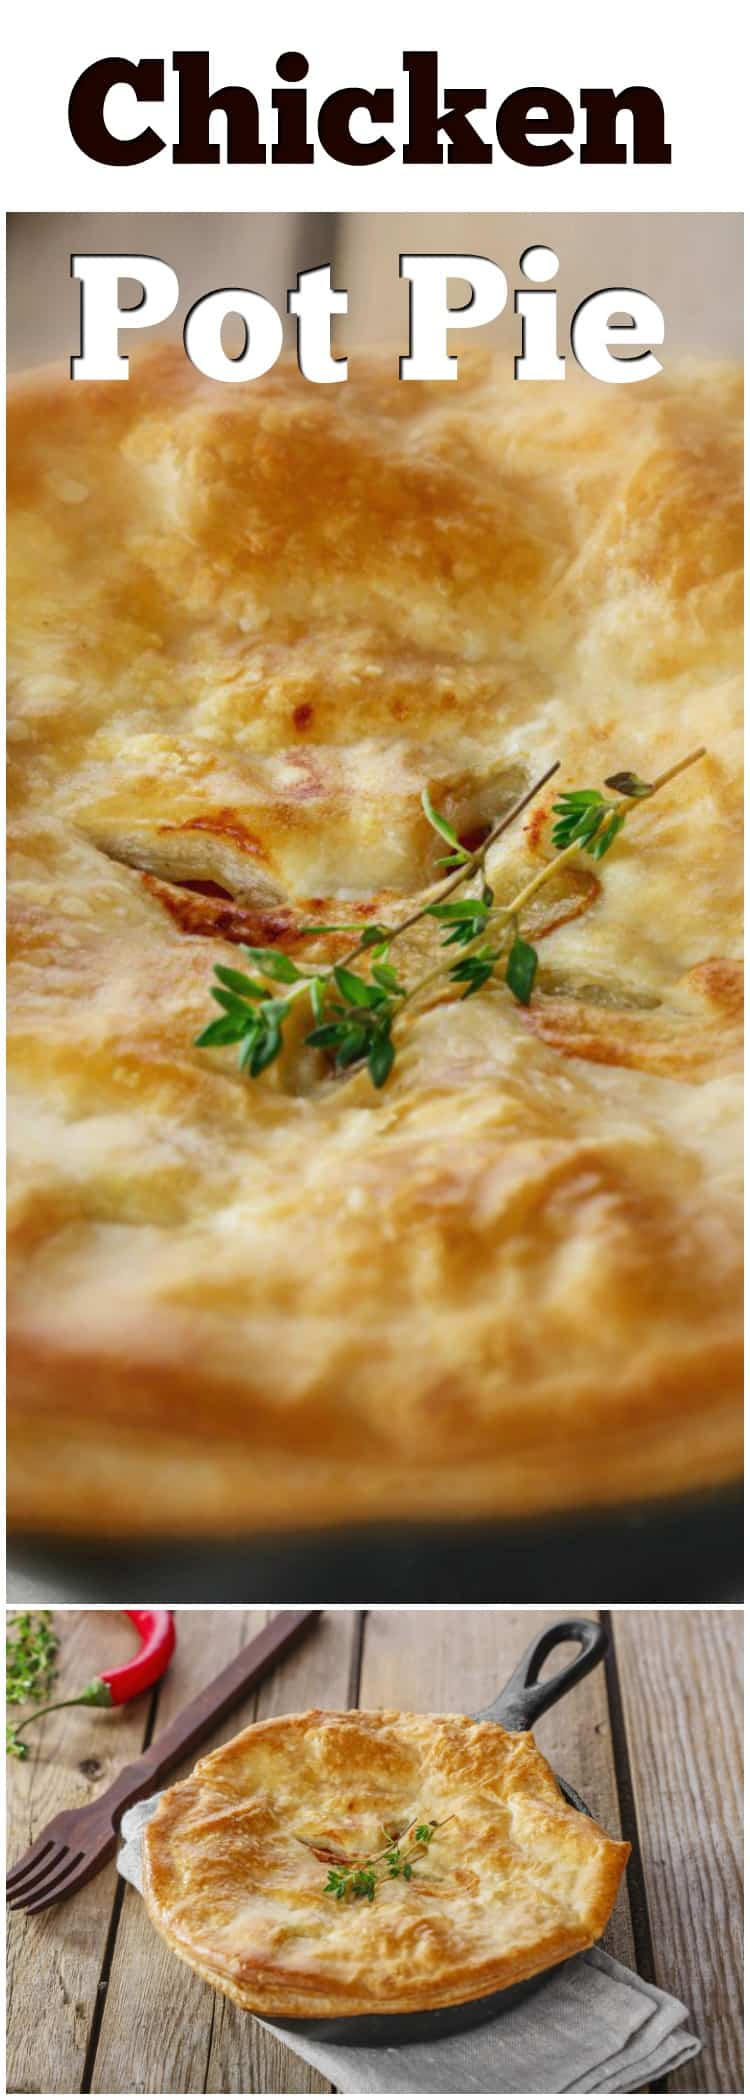 Just thinking about taking a Chicken Pot Pie right from the oven makes my mouth water. The tender chunks of chicken, nestled among onion, potato, peas or carrots and smothered by a deliciously flaky pastry – that's how I spell c-o-m-f-o-r-t.